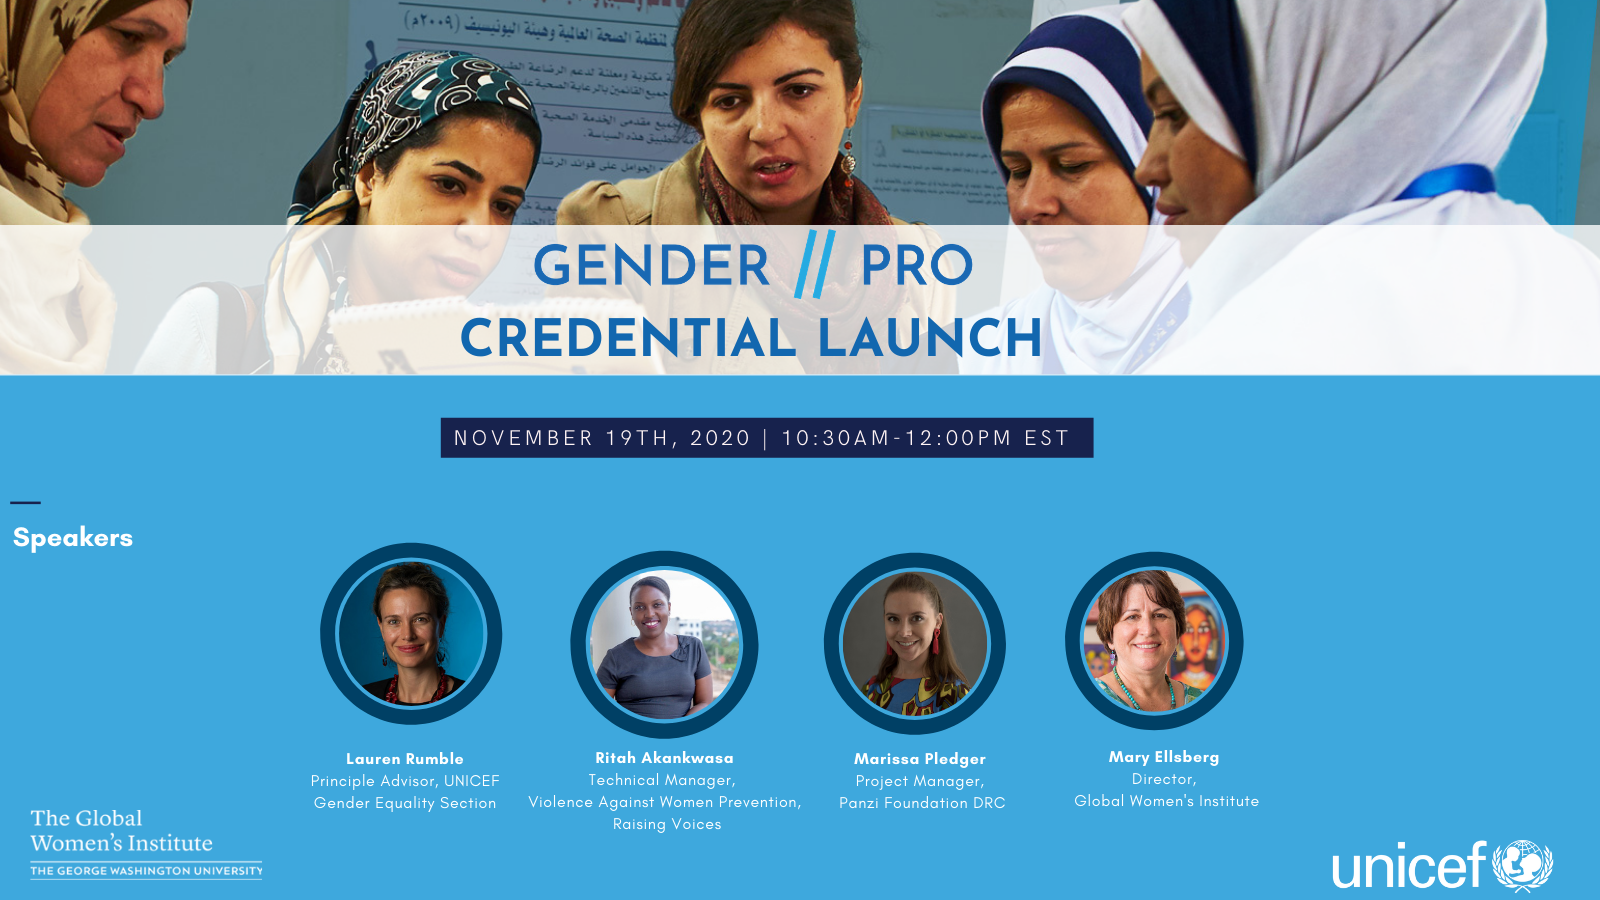 GenderPro webinar flyer with the GenderPro logo in blue, speaker headshots and a picture of women looking over a document together